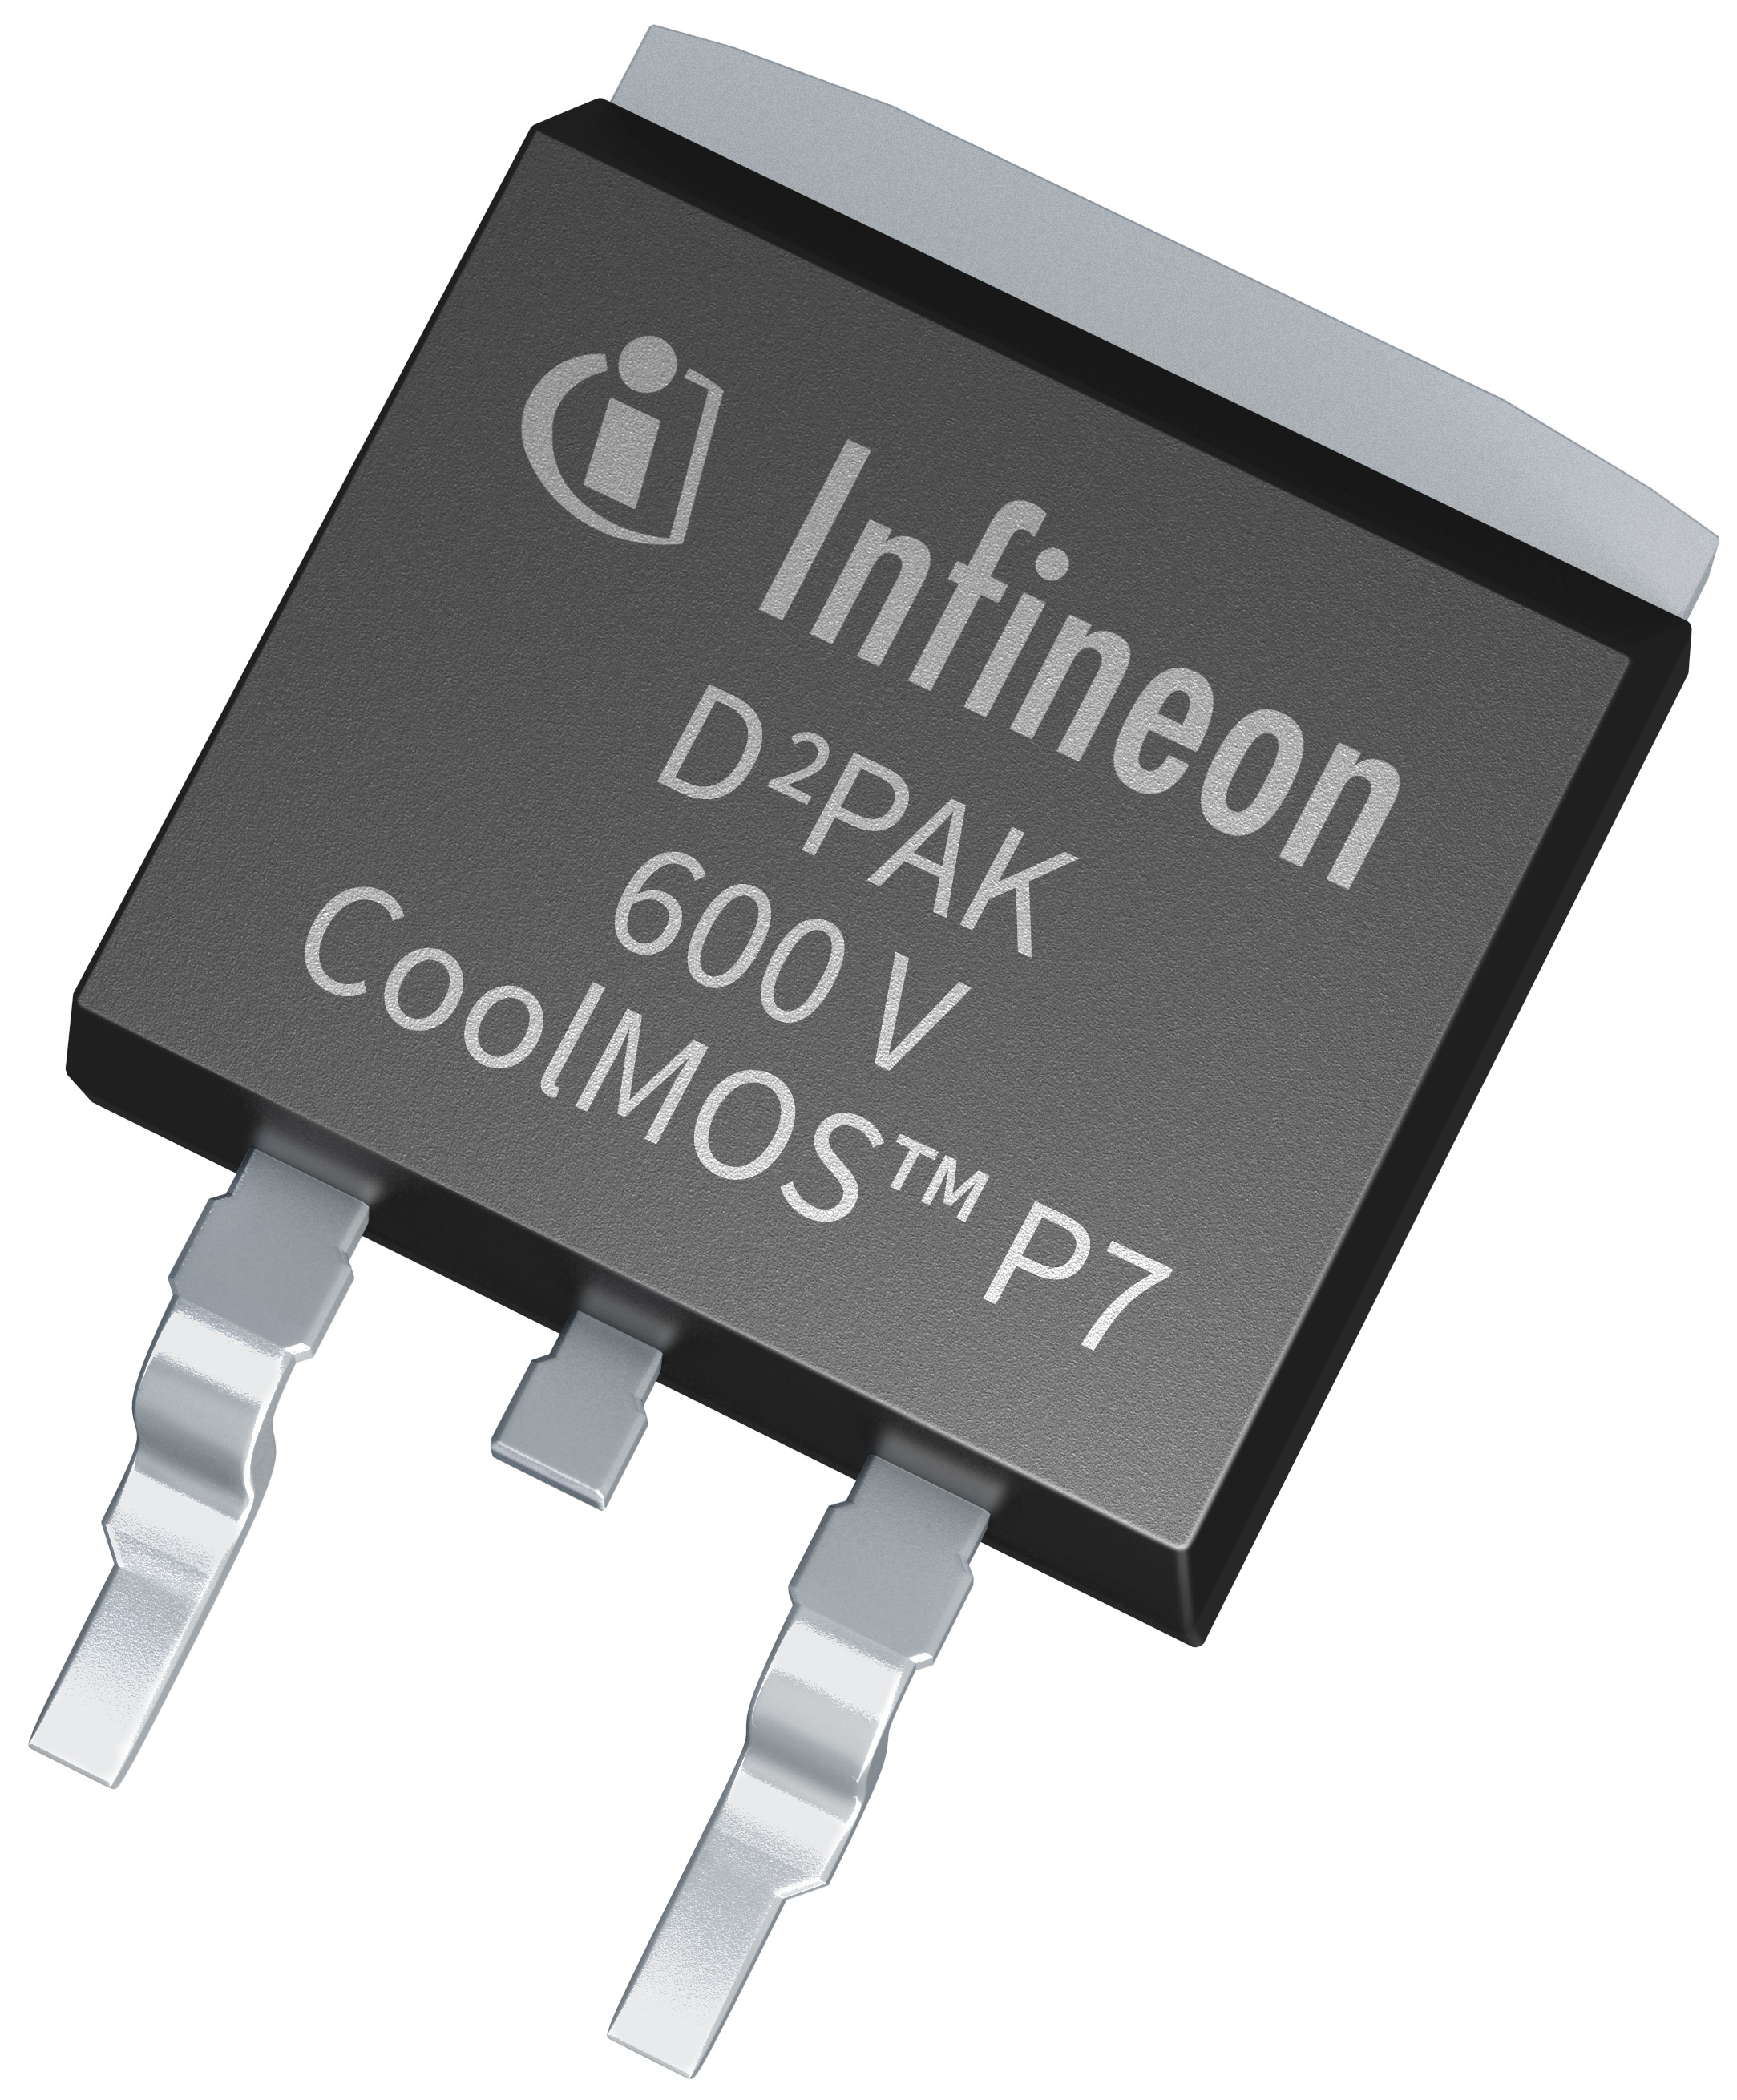 Bsc117n08ns5 Infineon Technologies Sic Schottky Diodes Vs Silicon Rectifiers Eeweb Power 600v Coolmos N Channel Mosfet